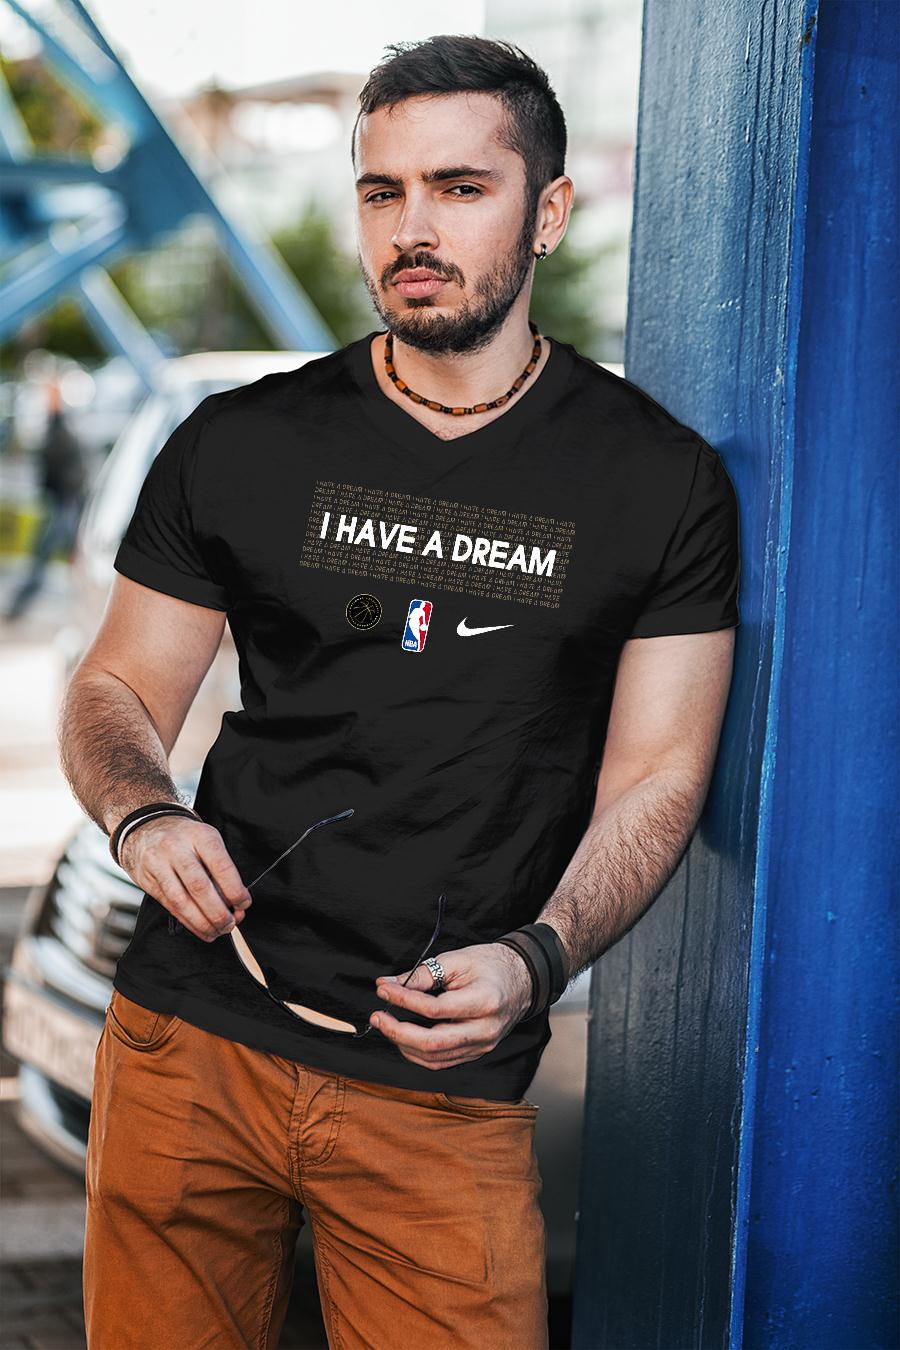 I have a dream NBA mlk shirt unisex